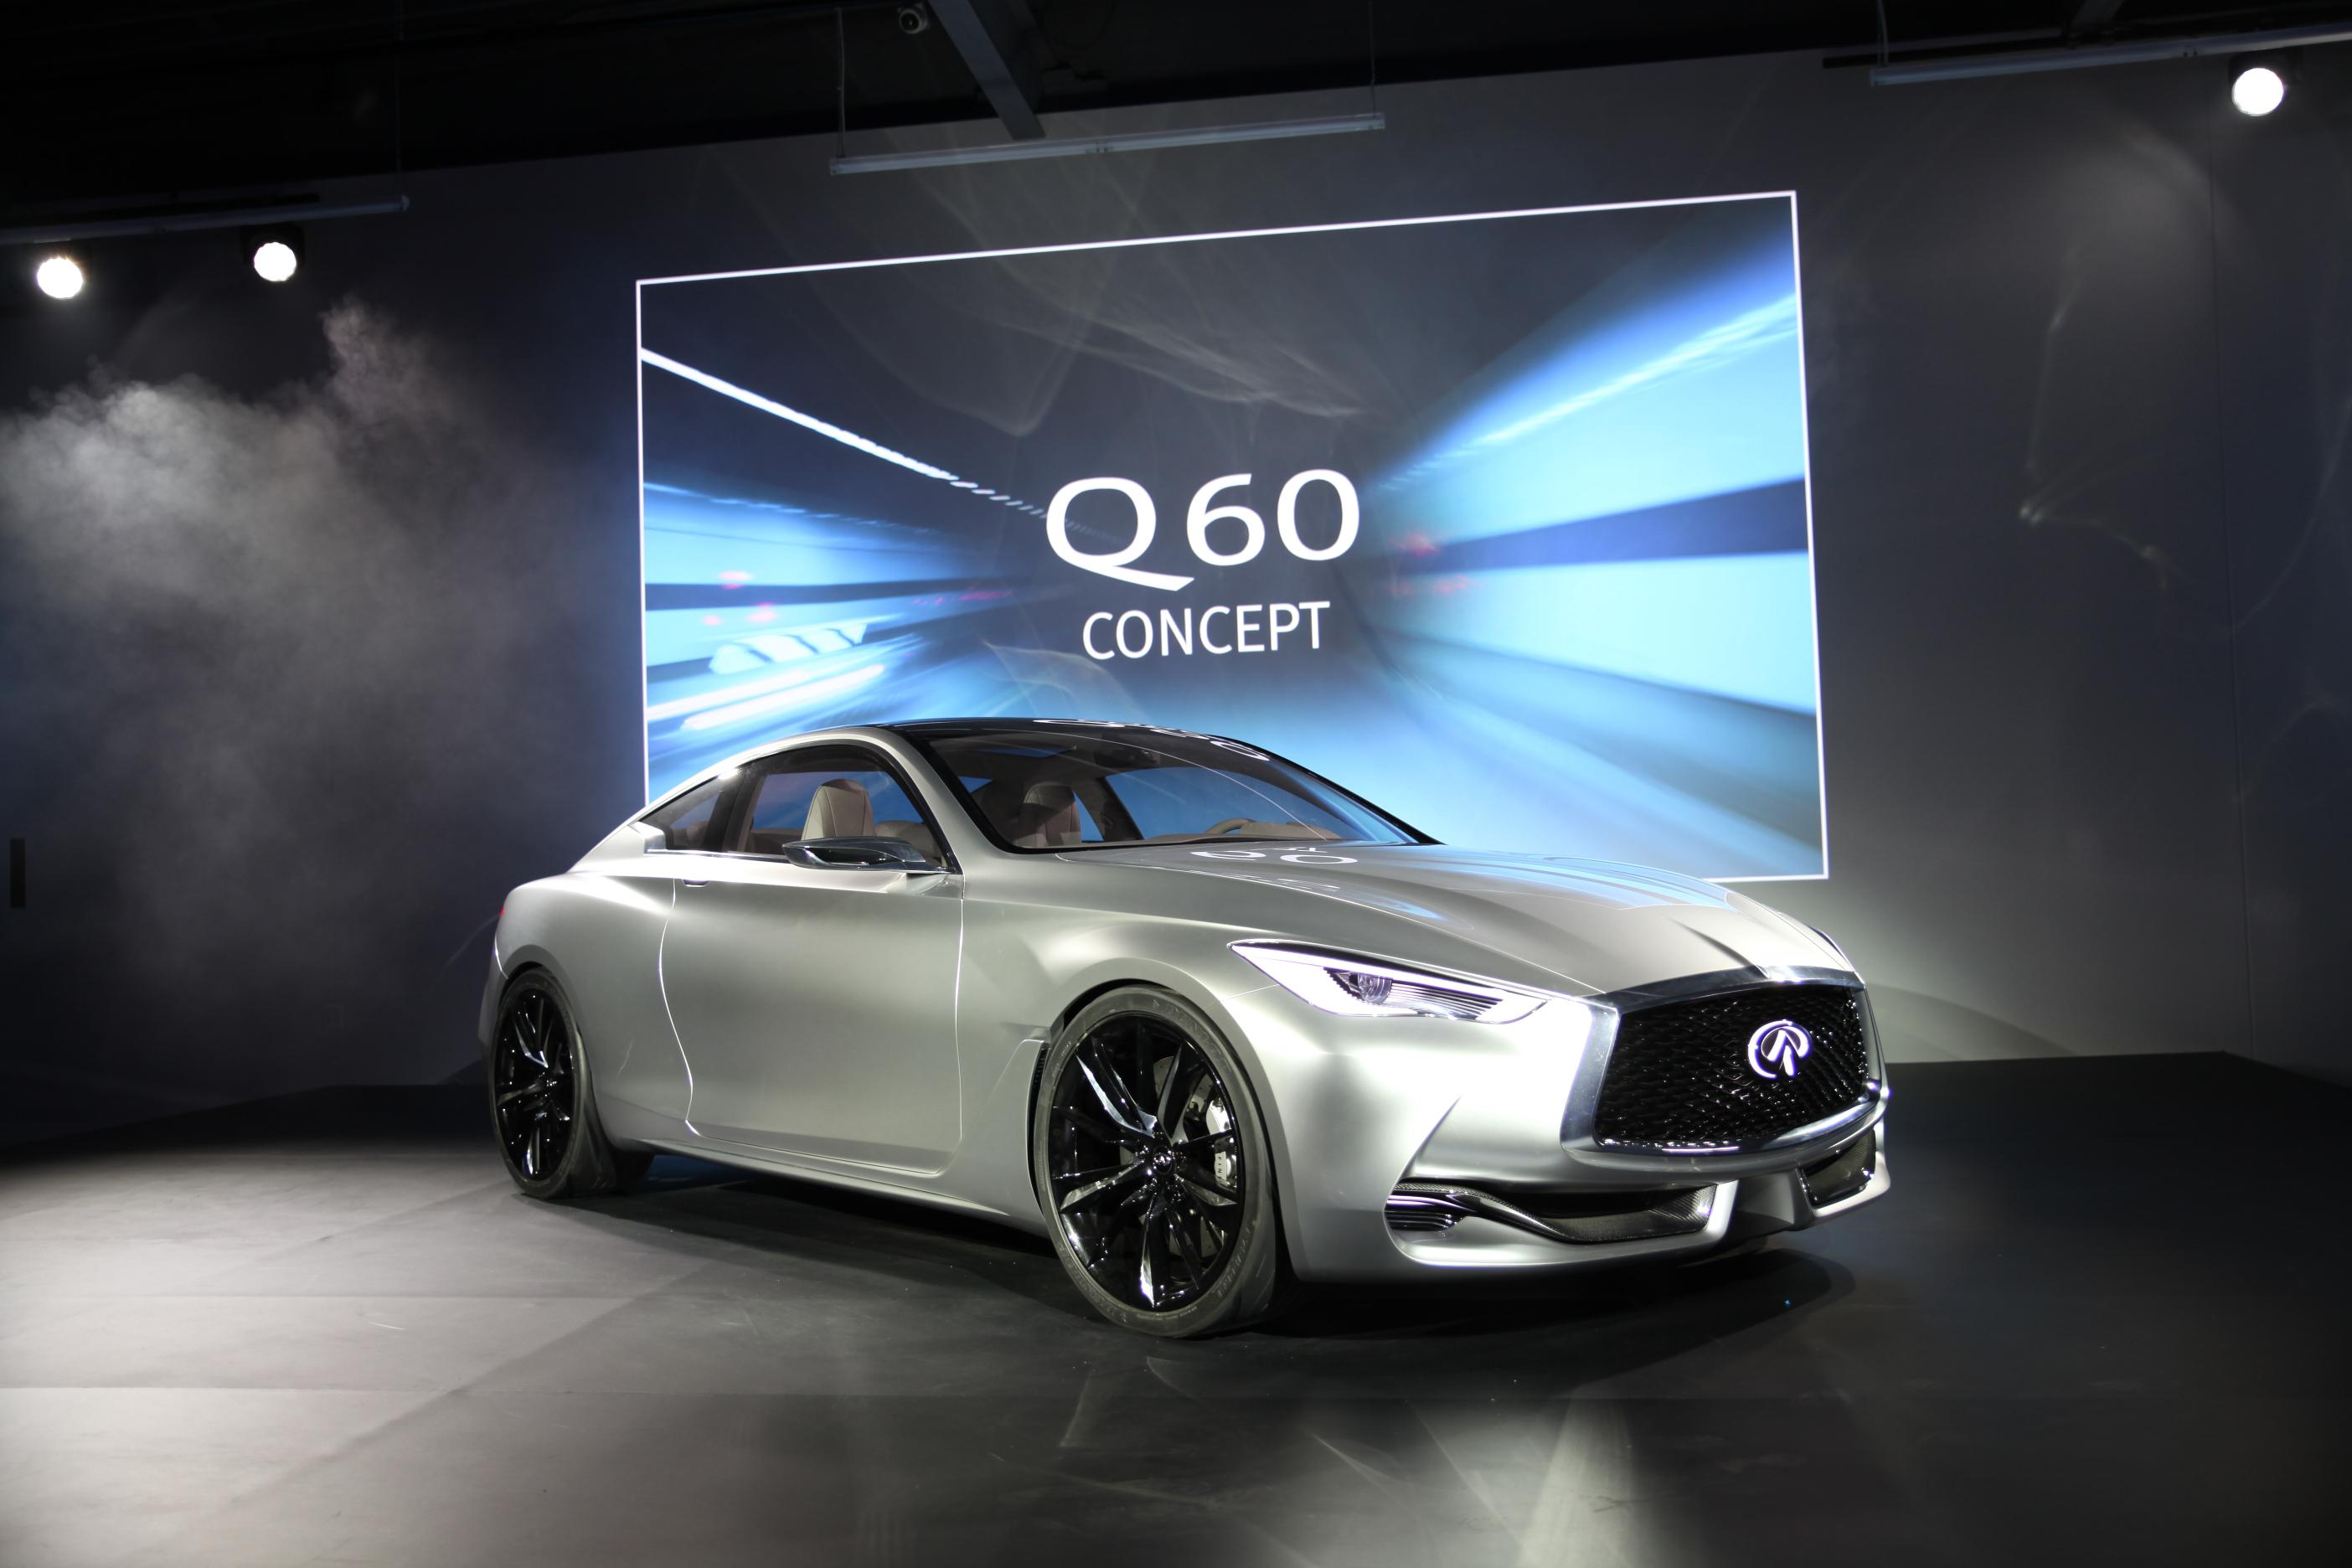 infiniti Q60 Concept via @carsfera www.carsfera.com #infiniti-q60-conceptprice, #infiniti-q60-conceptcar, #infinitiq-60concept-release-date, #infinitiq60-concept-engine, #infinitiq60-concept-interior, #infinitiq60-concept2015, #infinitiq60-concept2016, #infinitiq60-concept-detroit, #infinitiq60-concept-video, #infinitiq60-concept-release, #infinitiq60-concept, #infinitiq60-concept-detroit-auto-show, #infinitiq60-concept-cost, #infinitiq60convertibleconcept, #2015-infinitiq60-coupe-concept, #2016-infinitiq60-coupe-concept, #infinitiq60-concept-forum, #infinitiq60-concept-for-sale, #infinitiq60-concept-horsepower, #infinitiq60-concept-hp, #infiniti_q60_concept_news, #infiniti_q60_concept_production,#infiniti_q60_concept_photos, #2016_infiniti_q60_concept_price, #2015_infiniti_q60_concept_price, #infiniti_q60_concept_preis, #infiniti_q60_concept_precio, #infiniti_q60_concept_review, #infiniti_q60_concept_specs, #the_infiniti_q60_concept, #infiniti_q60_concept_wallpaper, #infiniti_q60_concept_wiki, #infiniti_q60_concept_youtube, #infiniti_q60_concept_2016_price